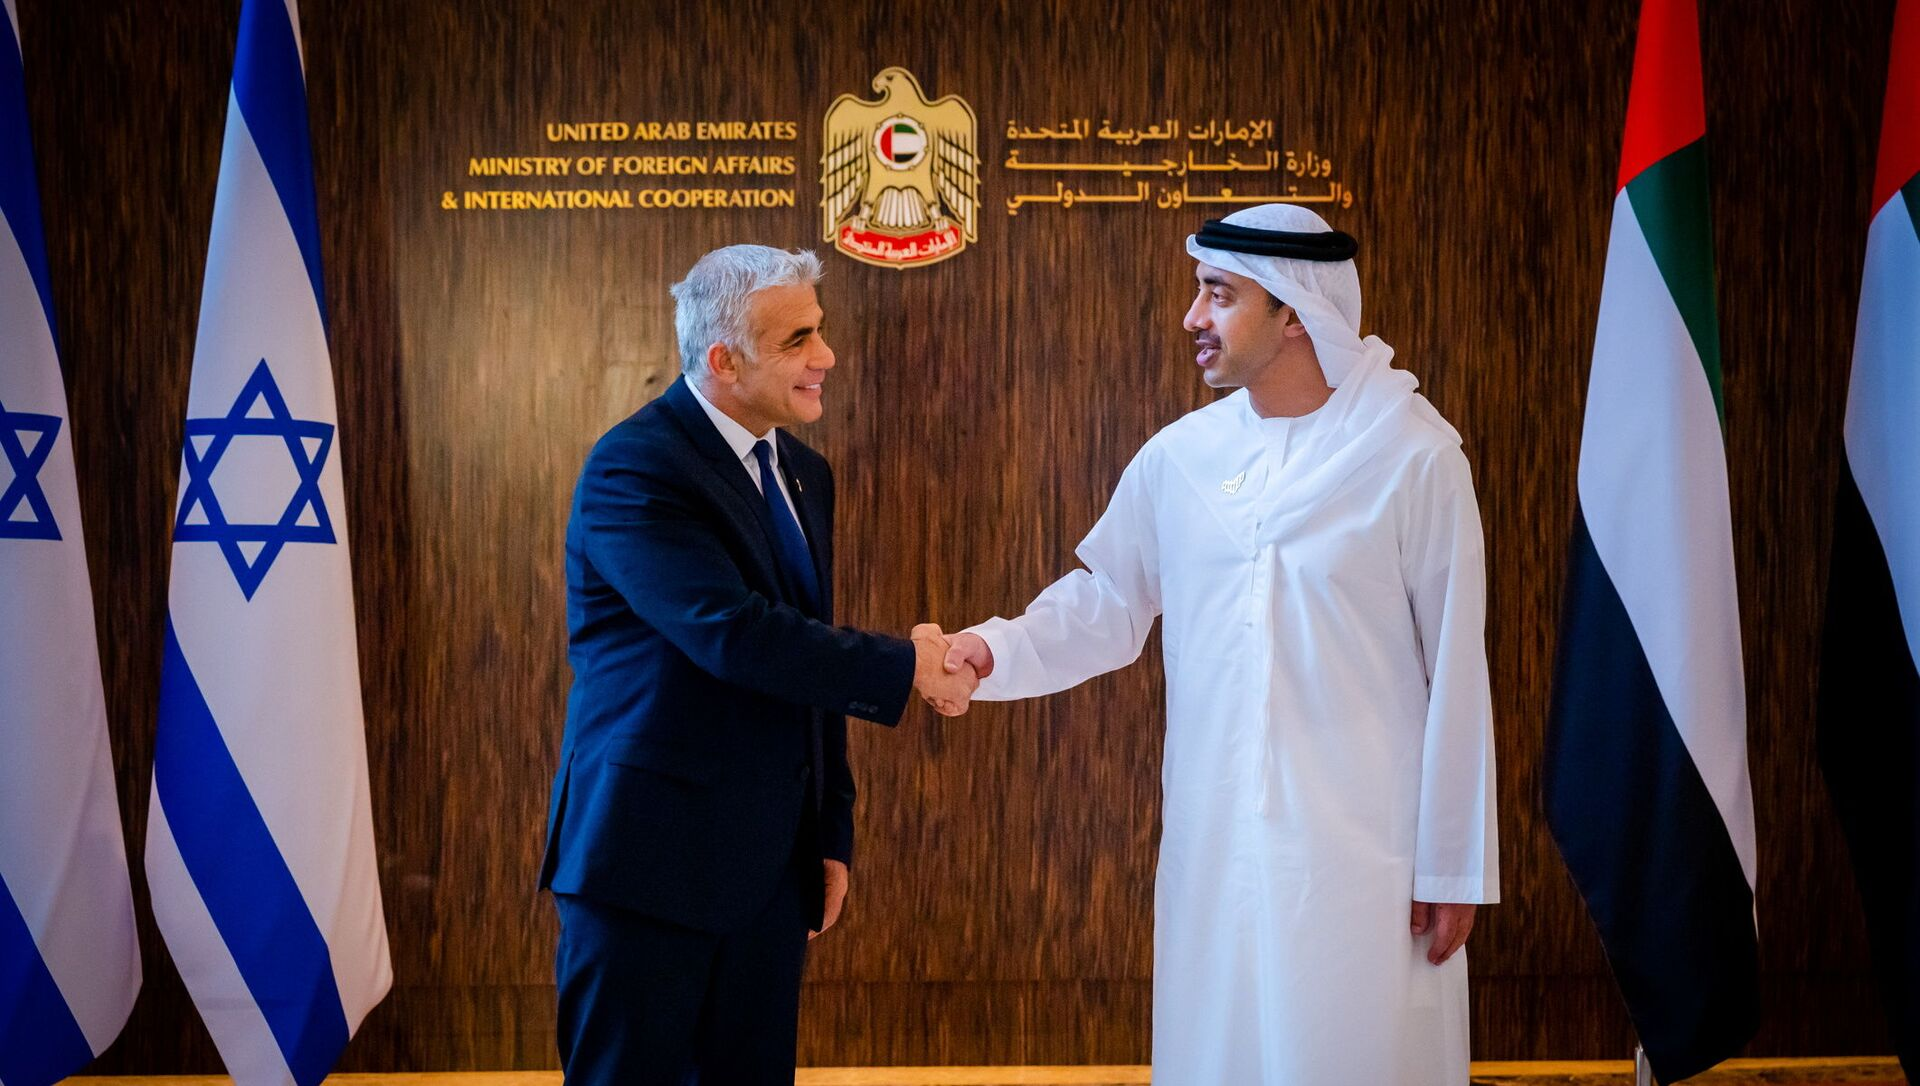 Israel's Foreign Minister Yair Lapid shakes hands with United Arab Emirates' Foreign Minister Sheikh Abdullah bin Zayed al-Nahyan in Abu Dhabi, UAE June 29, 2021. - Sputnik International, 1920, 11.08.2021